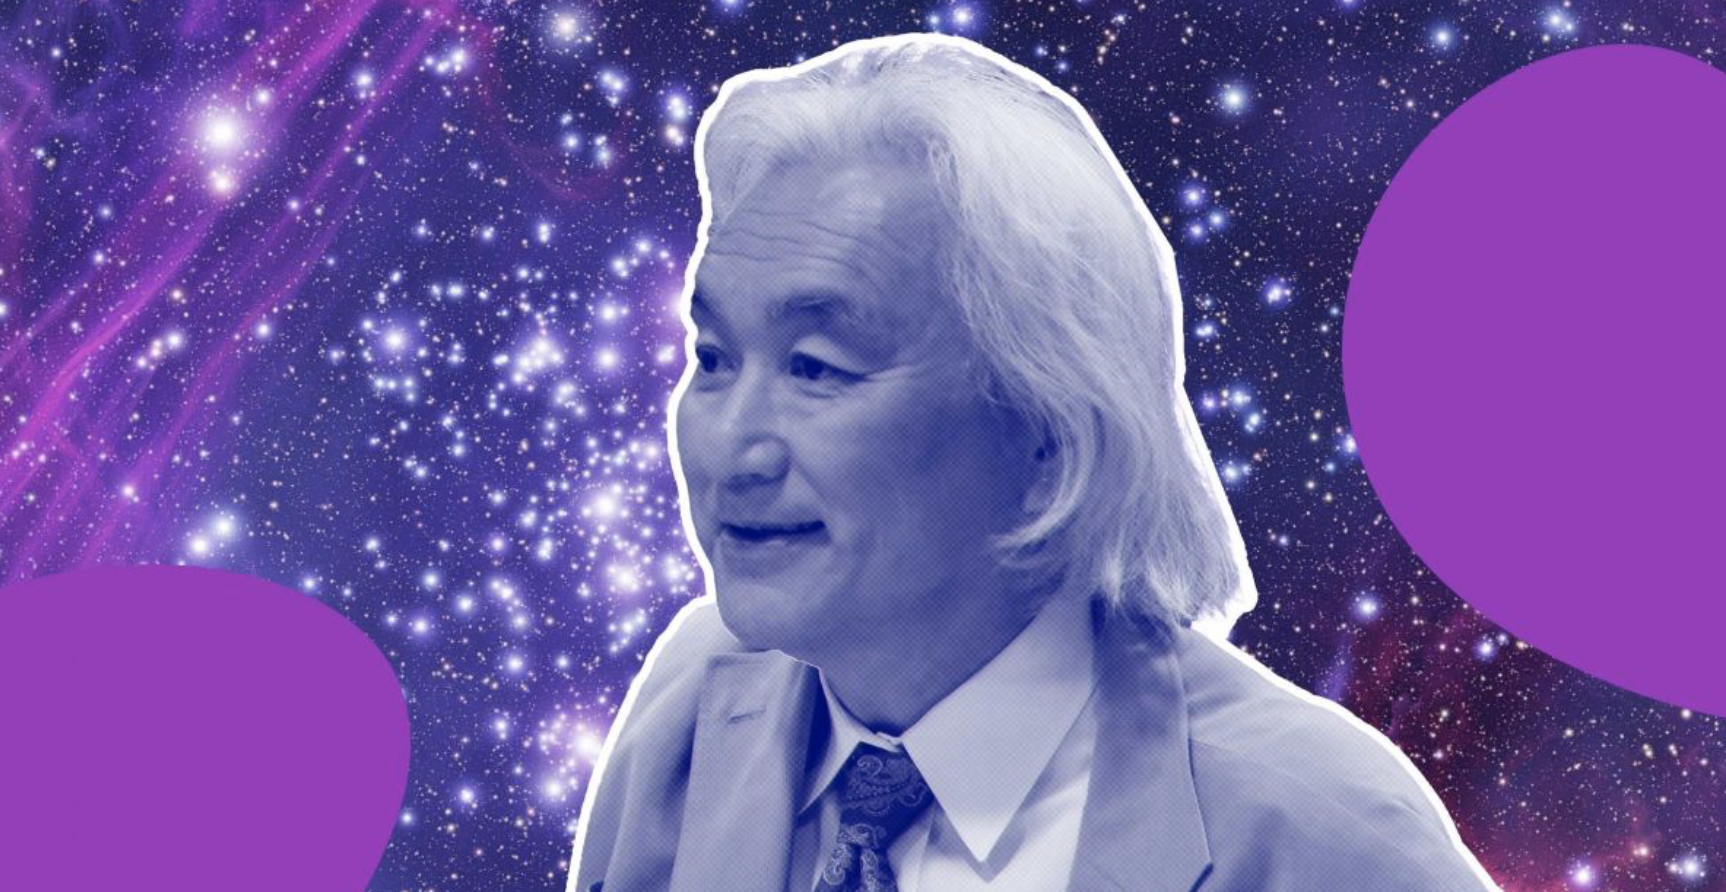 Physicist Michio Kaku Has Some Powerful Predictions for the Future - - FUTURISM